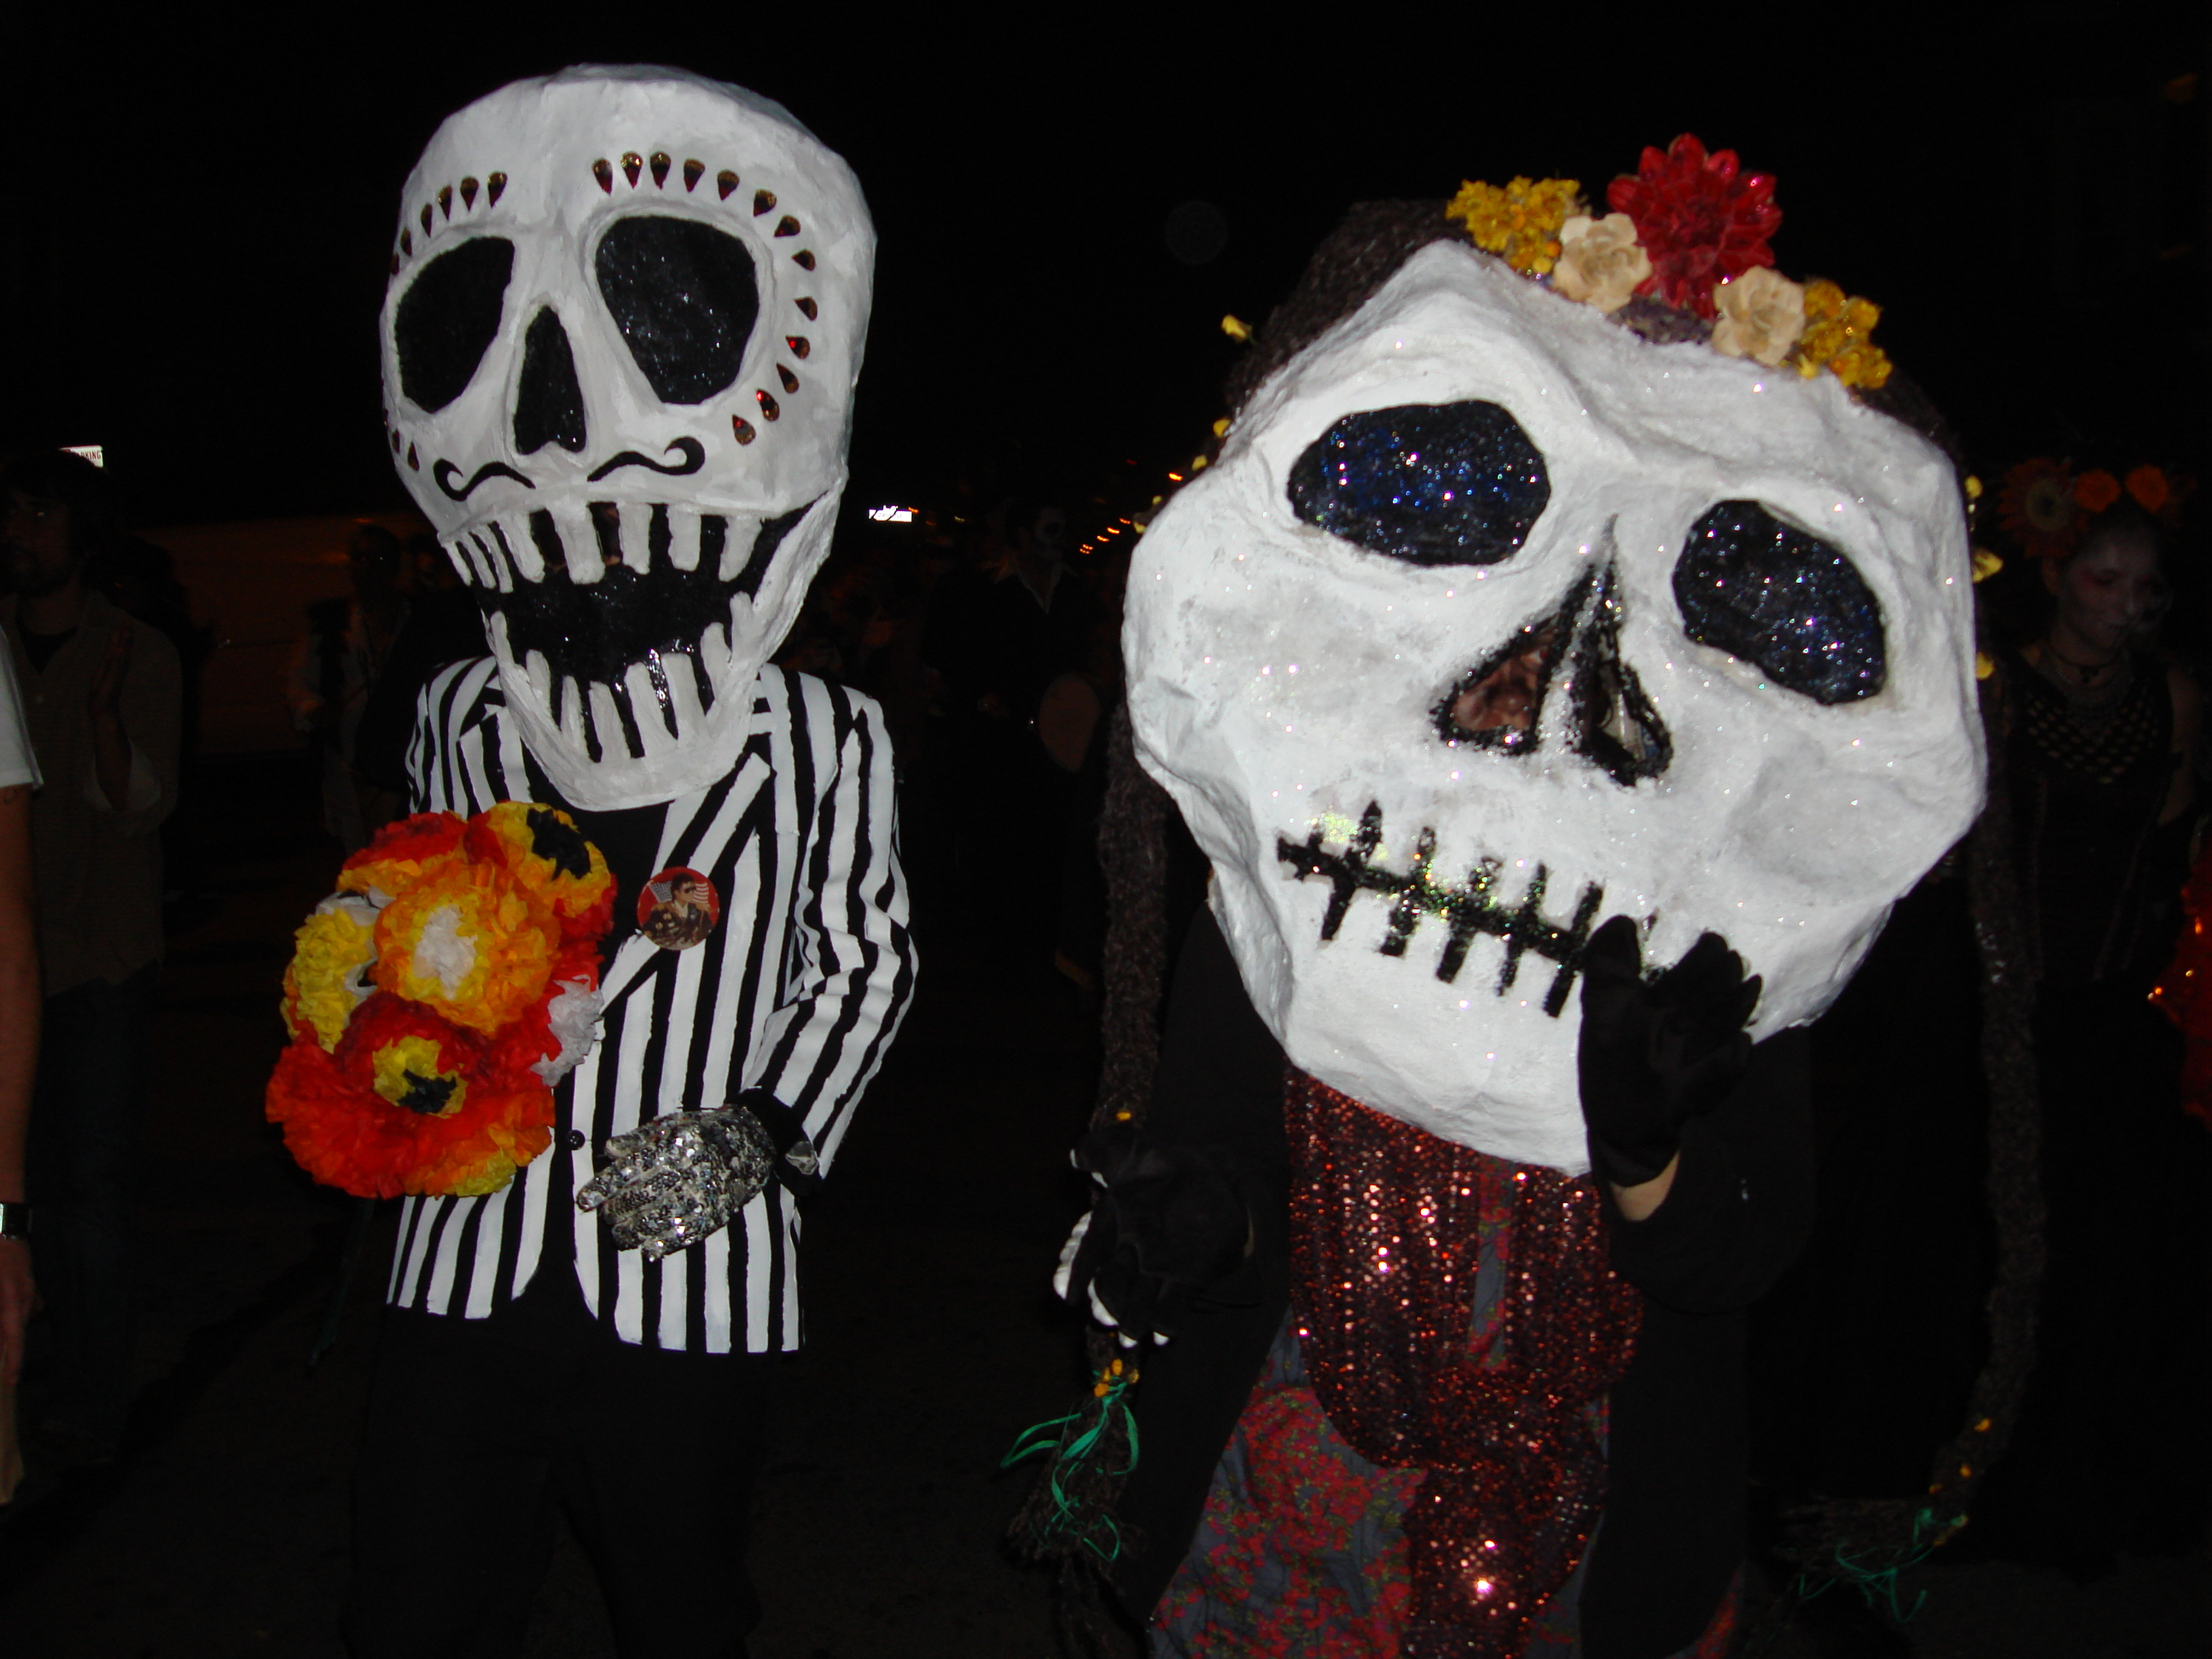 dia de los muertos essay child study coursework help dear families our class will be if your child has not completed the essay by friday he or she must